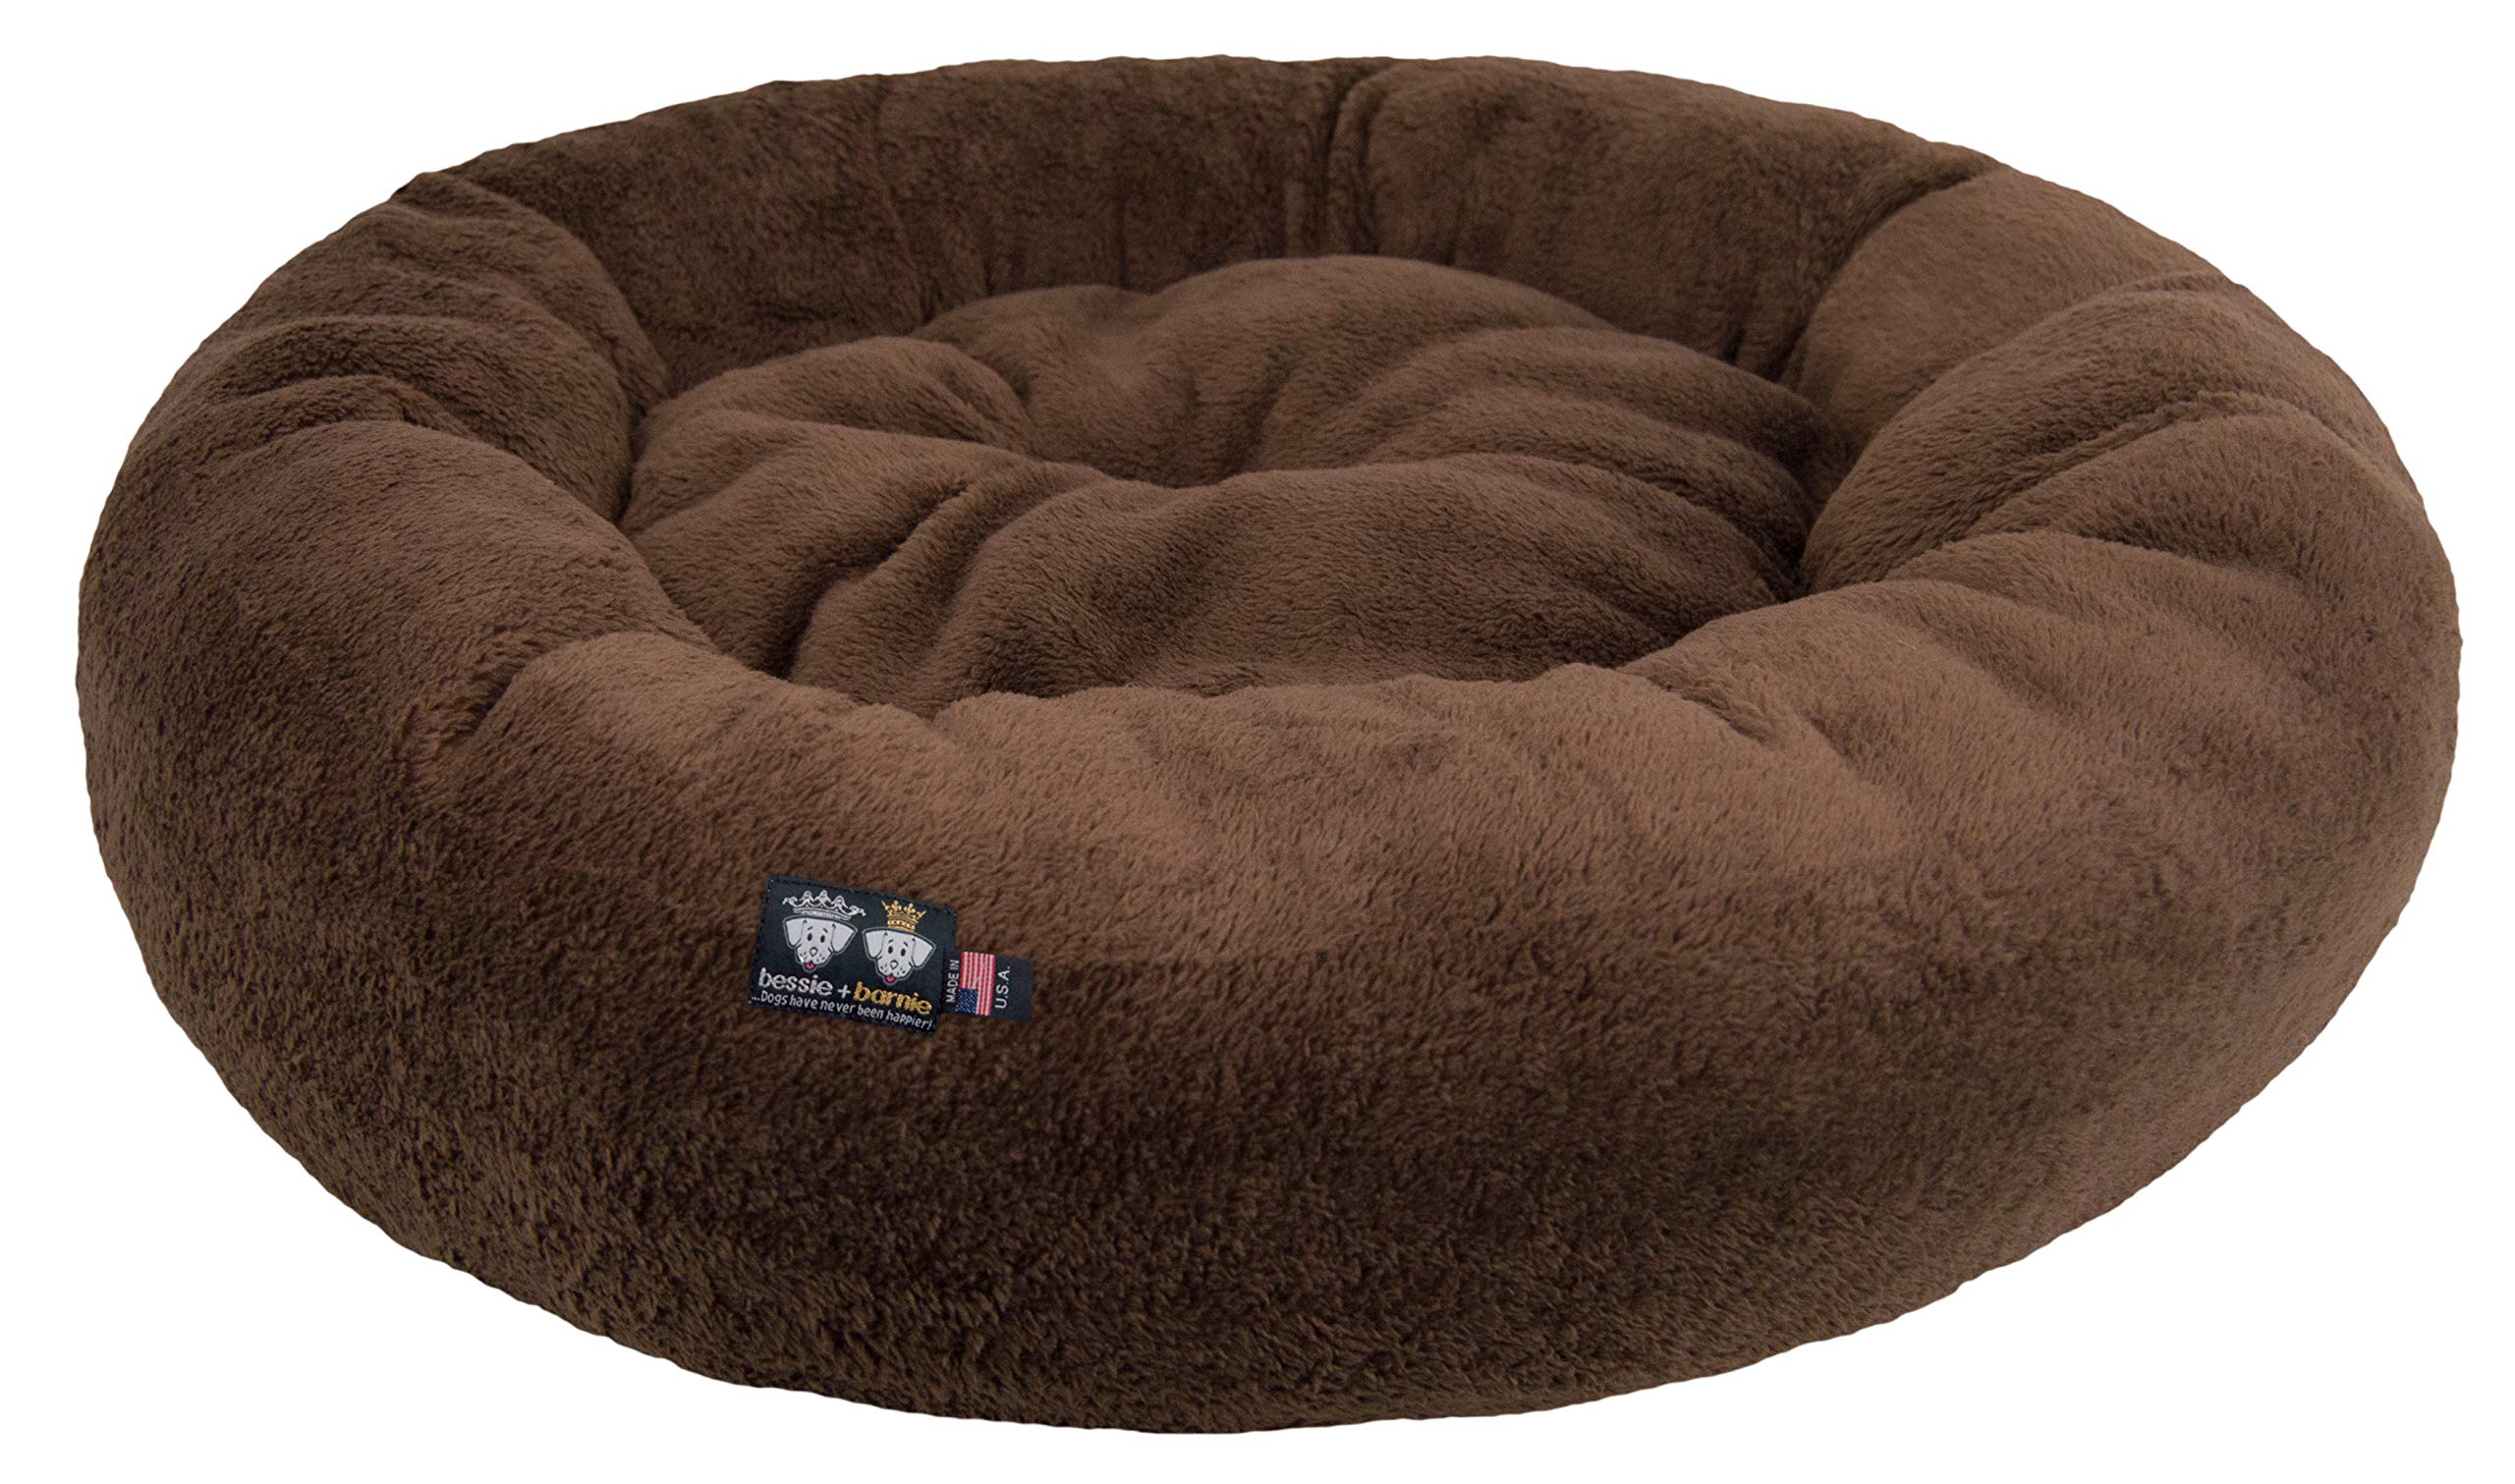 BESSIE AND BARNIE Ultra Plush Deluxe Comfort Pet Dog & Cat Brown Snuggle Bed (Multiple Sizes) - Machine Washable, Made in The USA, Reversible, Durable Soft Fabrics by BESSIE AND BARNIE